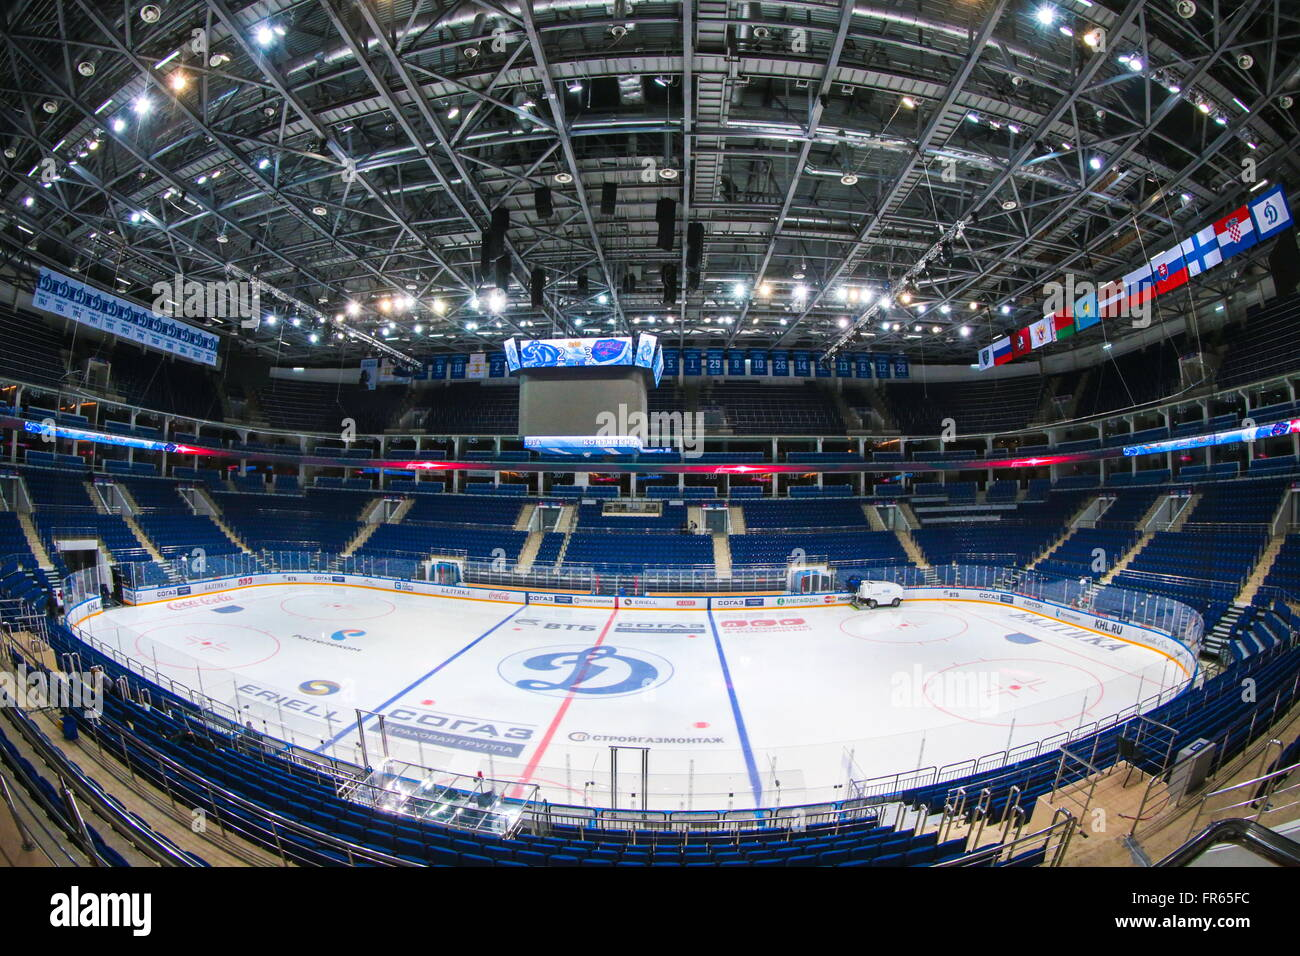 Moscow, Russia. 21st Mar, 2016. An ice hockey arena at VTB Ledovy Dvorets [Ice Palace], a multi-purpose sports complex, - Stock Image